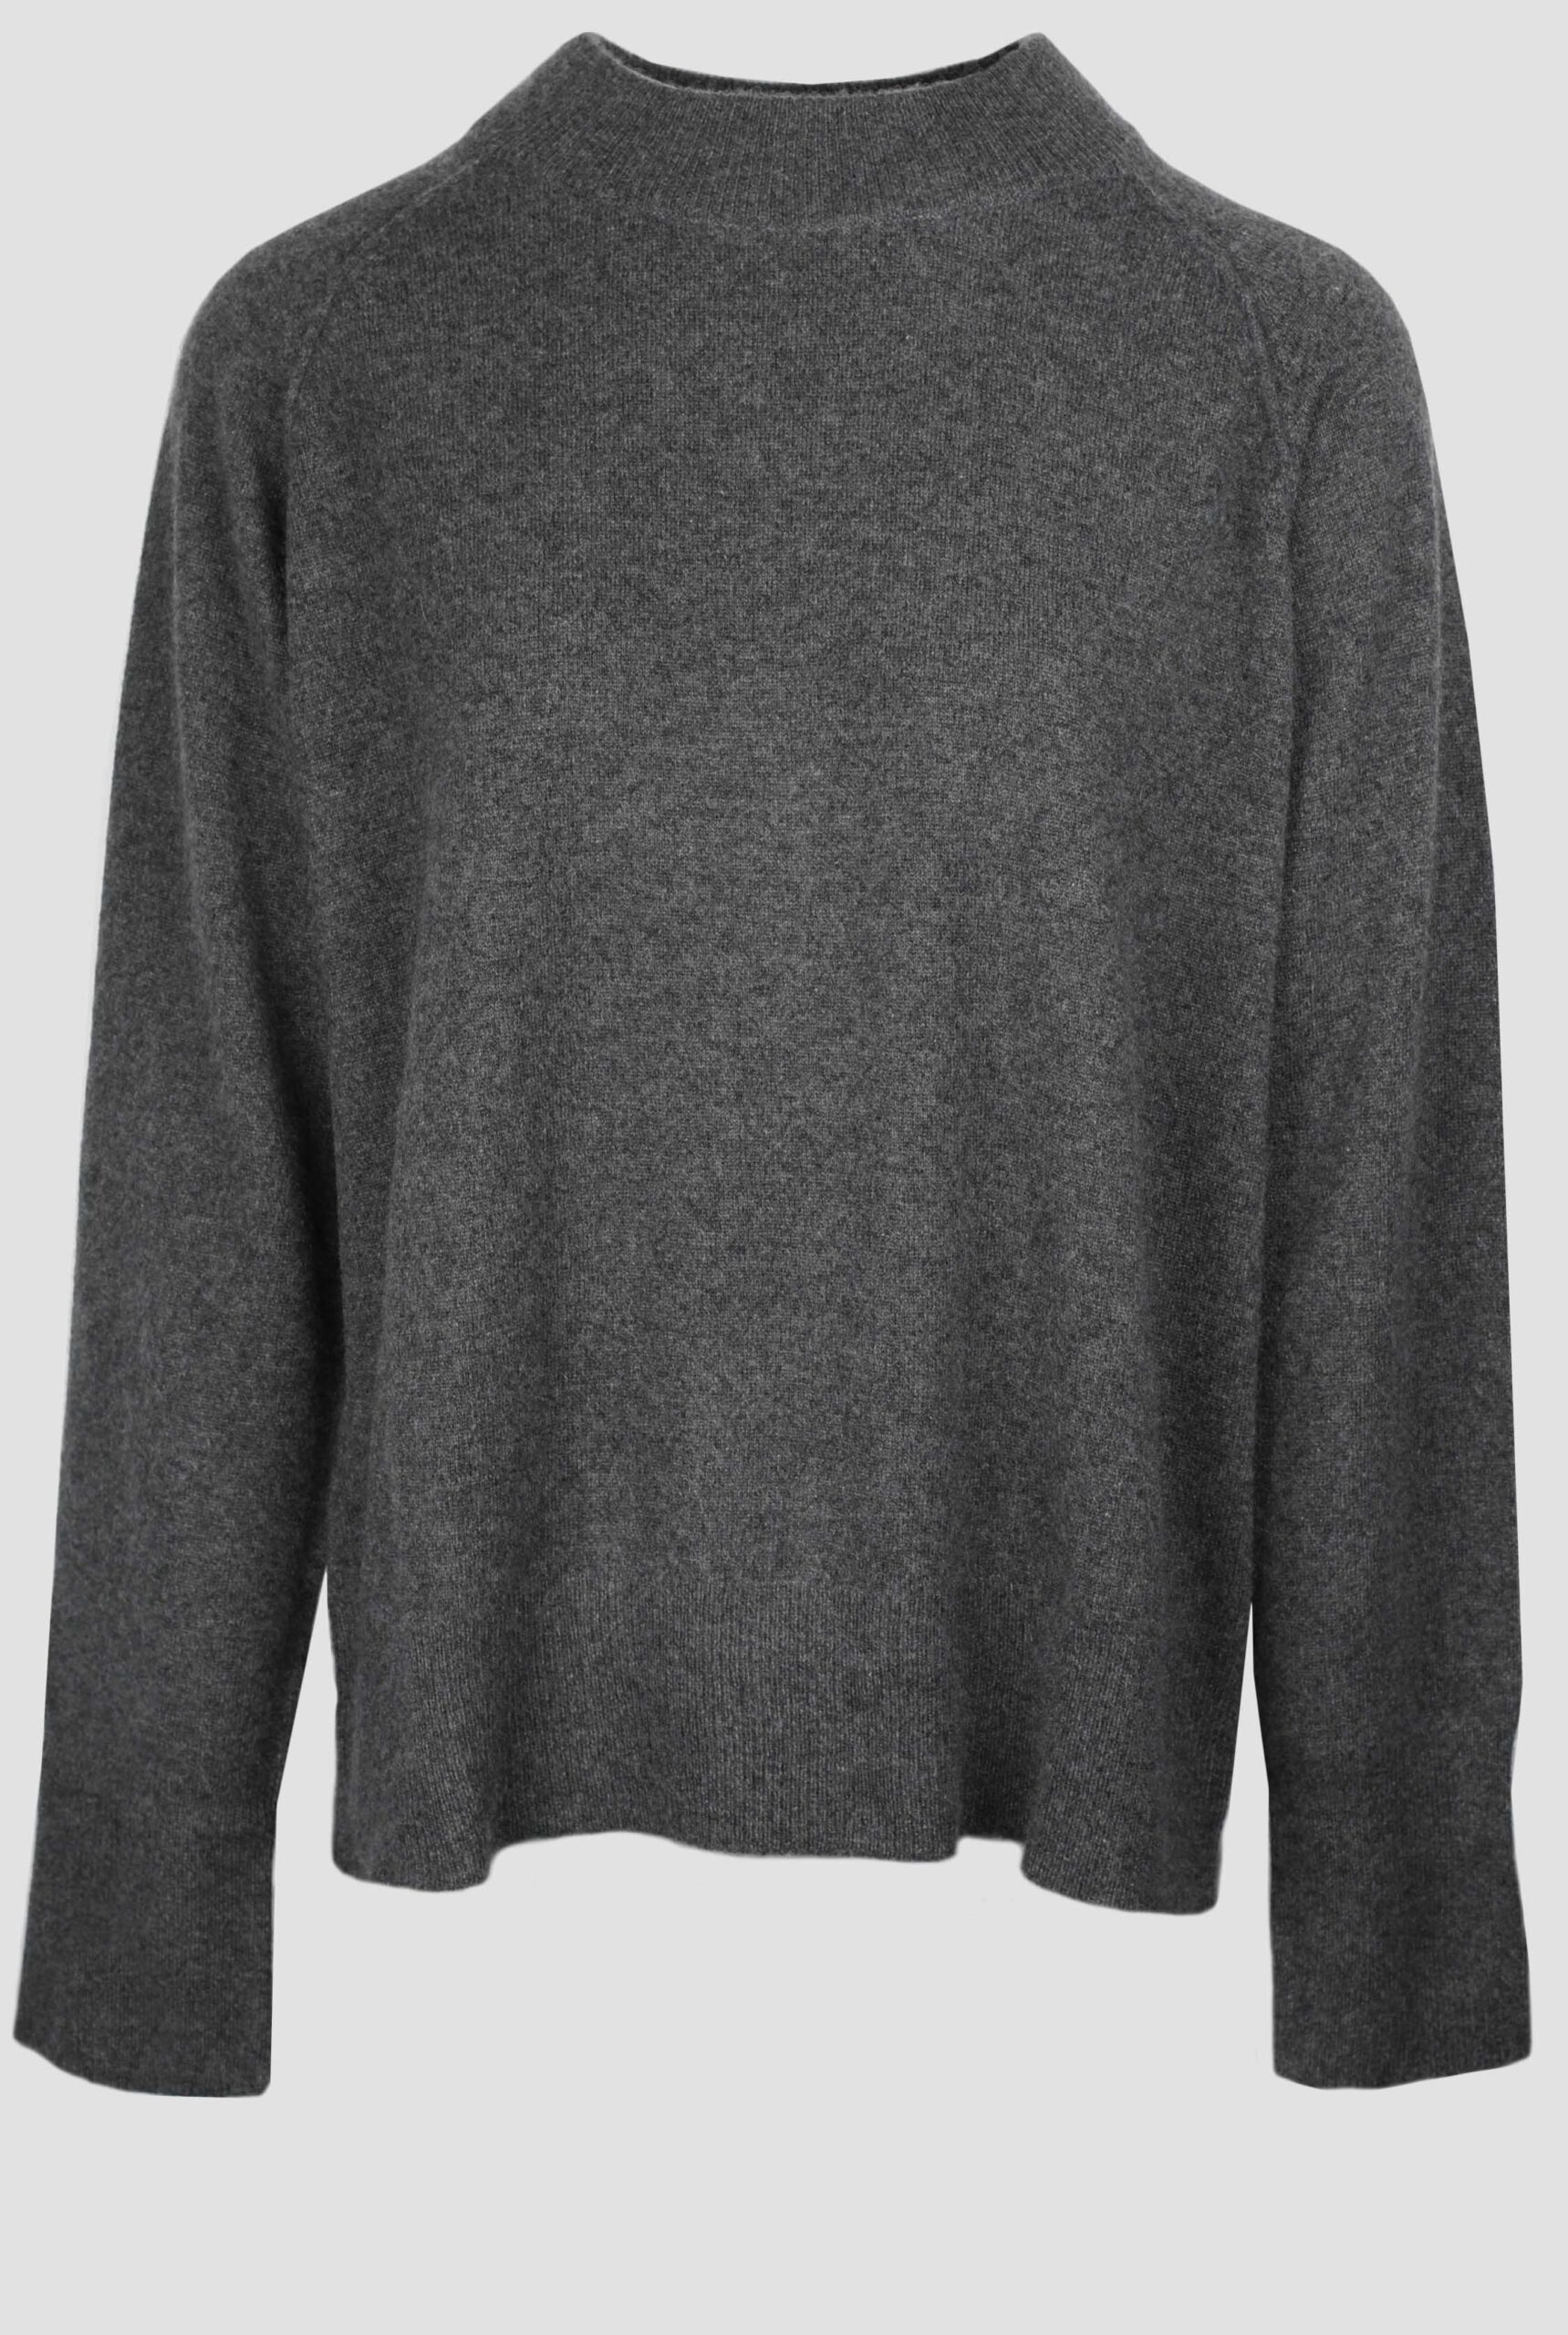 Grey high neck cashmere sweater